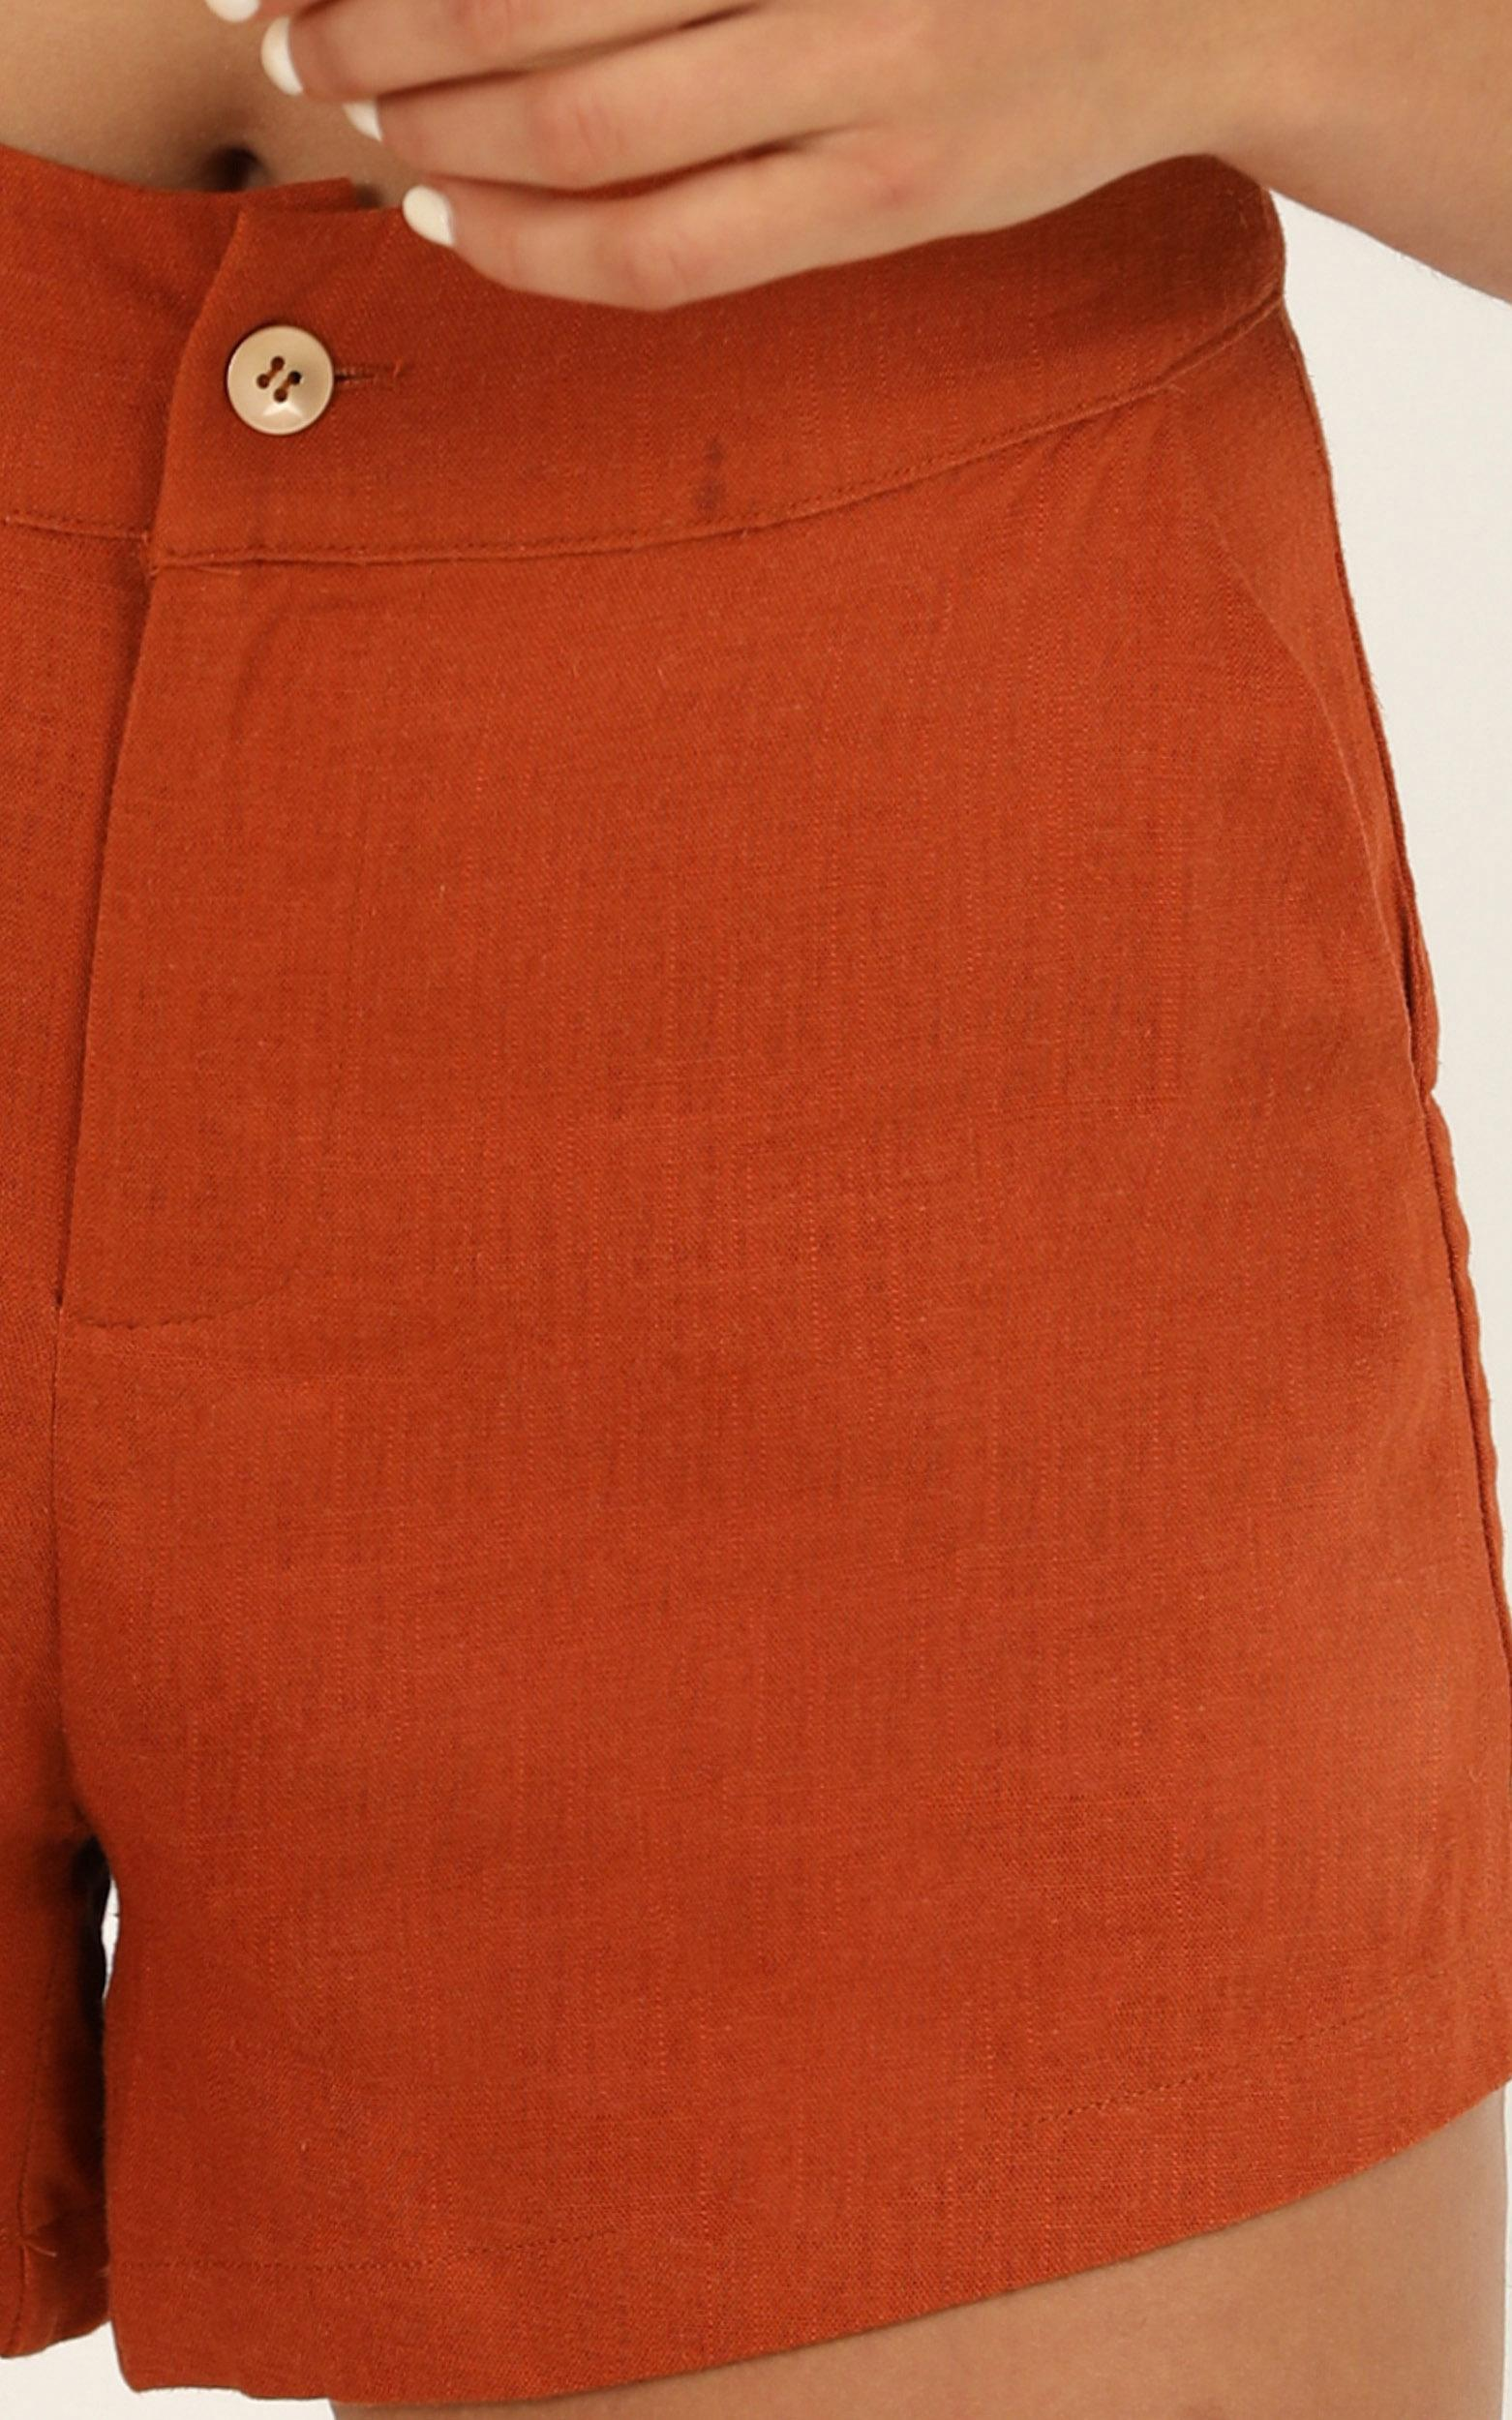 Still Entertained shorts In rust linen look - 14 (XL), Rust, hi-res image number null